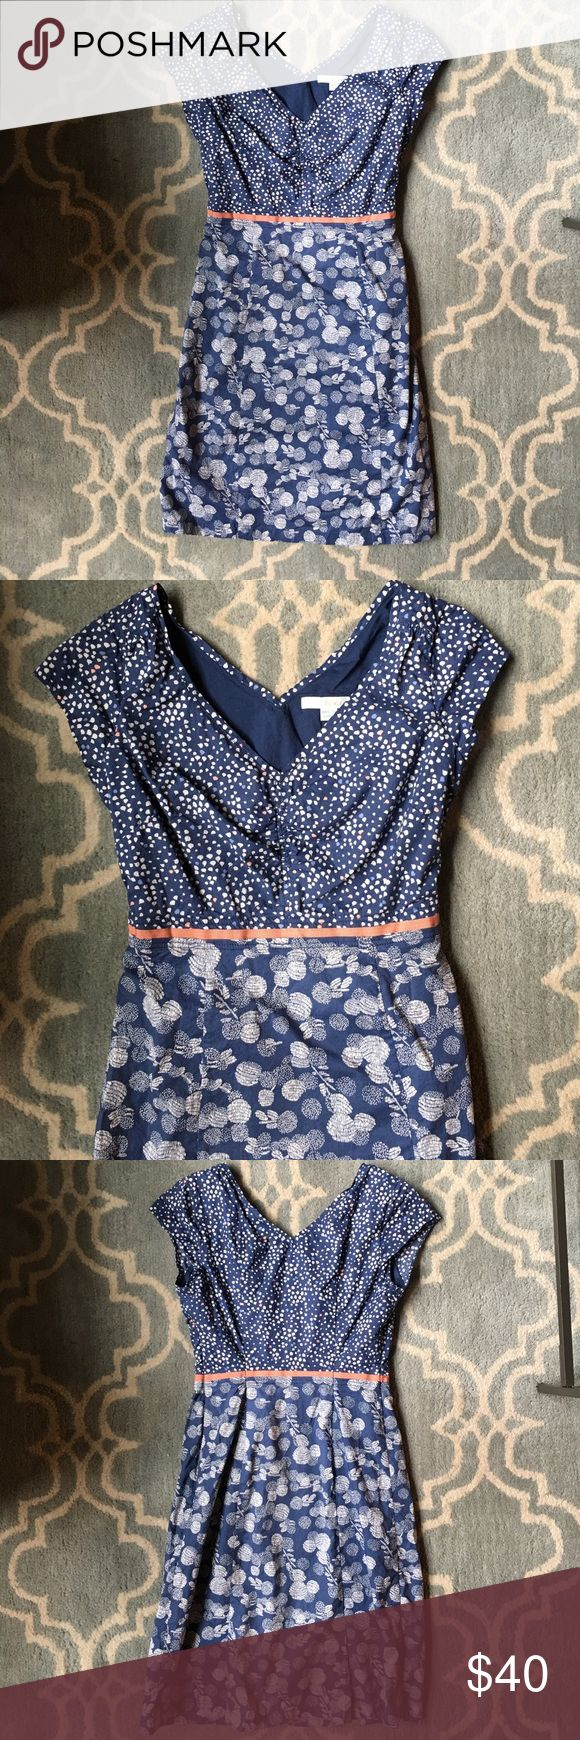 """BODEN Blue White Pink Print Cotton Petite Dress Boden blue, white, and salmon pink print dress. Boden is a British brand 🇬🇧  ❥  Worn twice  ❥  Size 2P (professionally tailored to fit like a 00)  ❣ No trades. No PayPal. No holds. ❣ ❣ For offers, use the """"Offer"""" button below. ❣ Boden Dresses"""